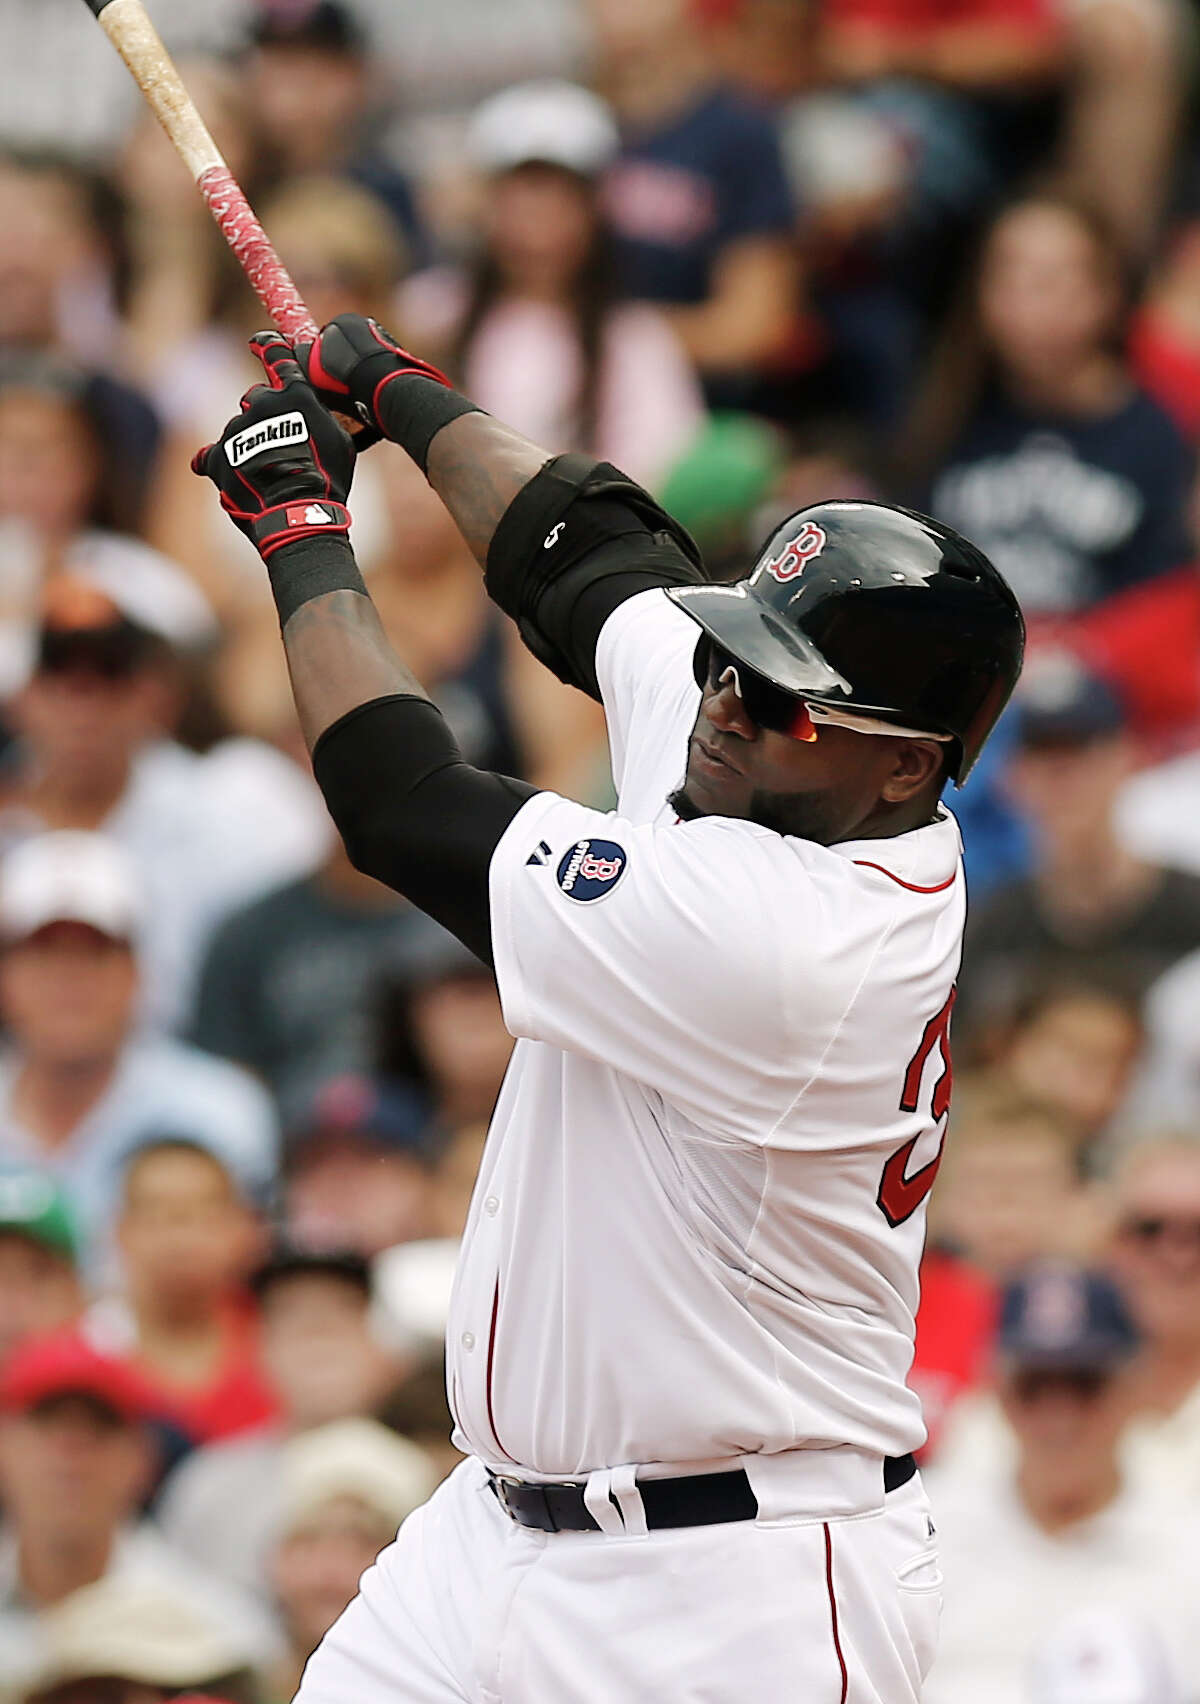 BOSTON, MA - SEPTEMBER 1: David Ortiz #34 of the Boston Red Sox follows through on a RBI single against the Chicago White Sox during the fifth inning at Fenway Park on September 1, 2013 in Boston, Massachusetts. (Photo by Winslow Townson/Getty Images) ORG XMIT: 163495307